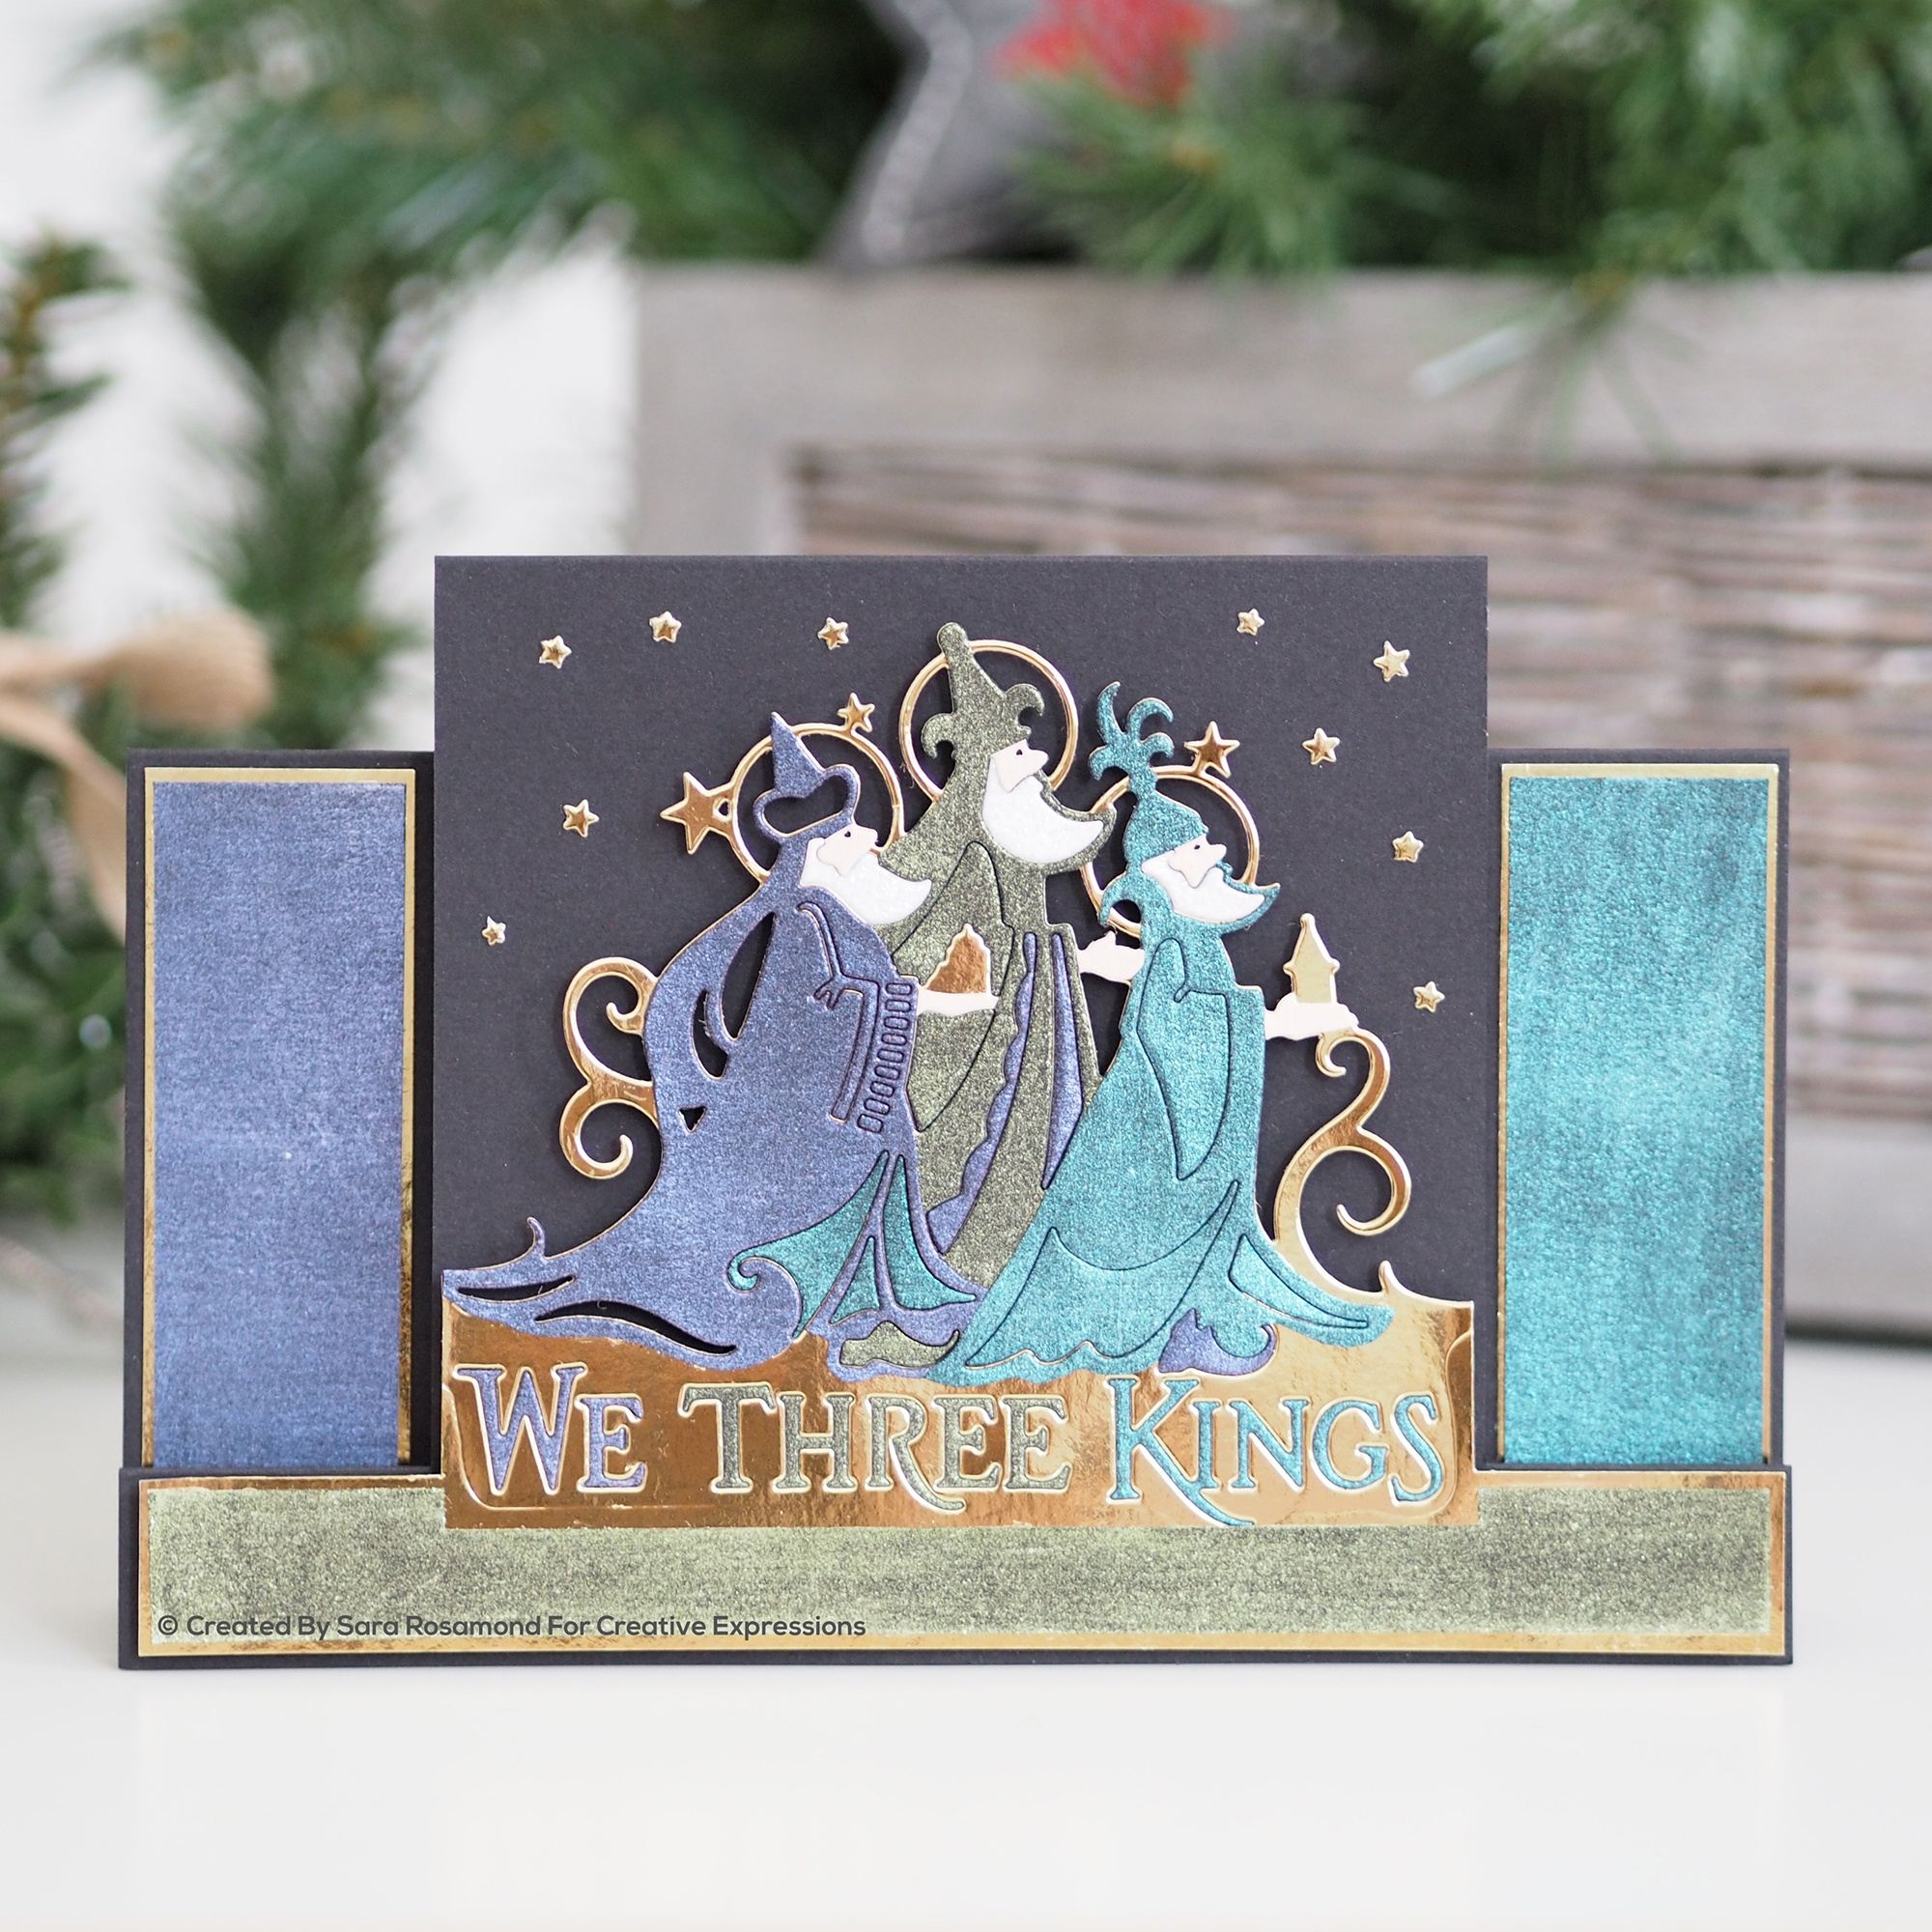 Creative Expressions Paper Cuts Edger Craft Dies-We Three Kings